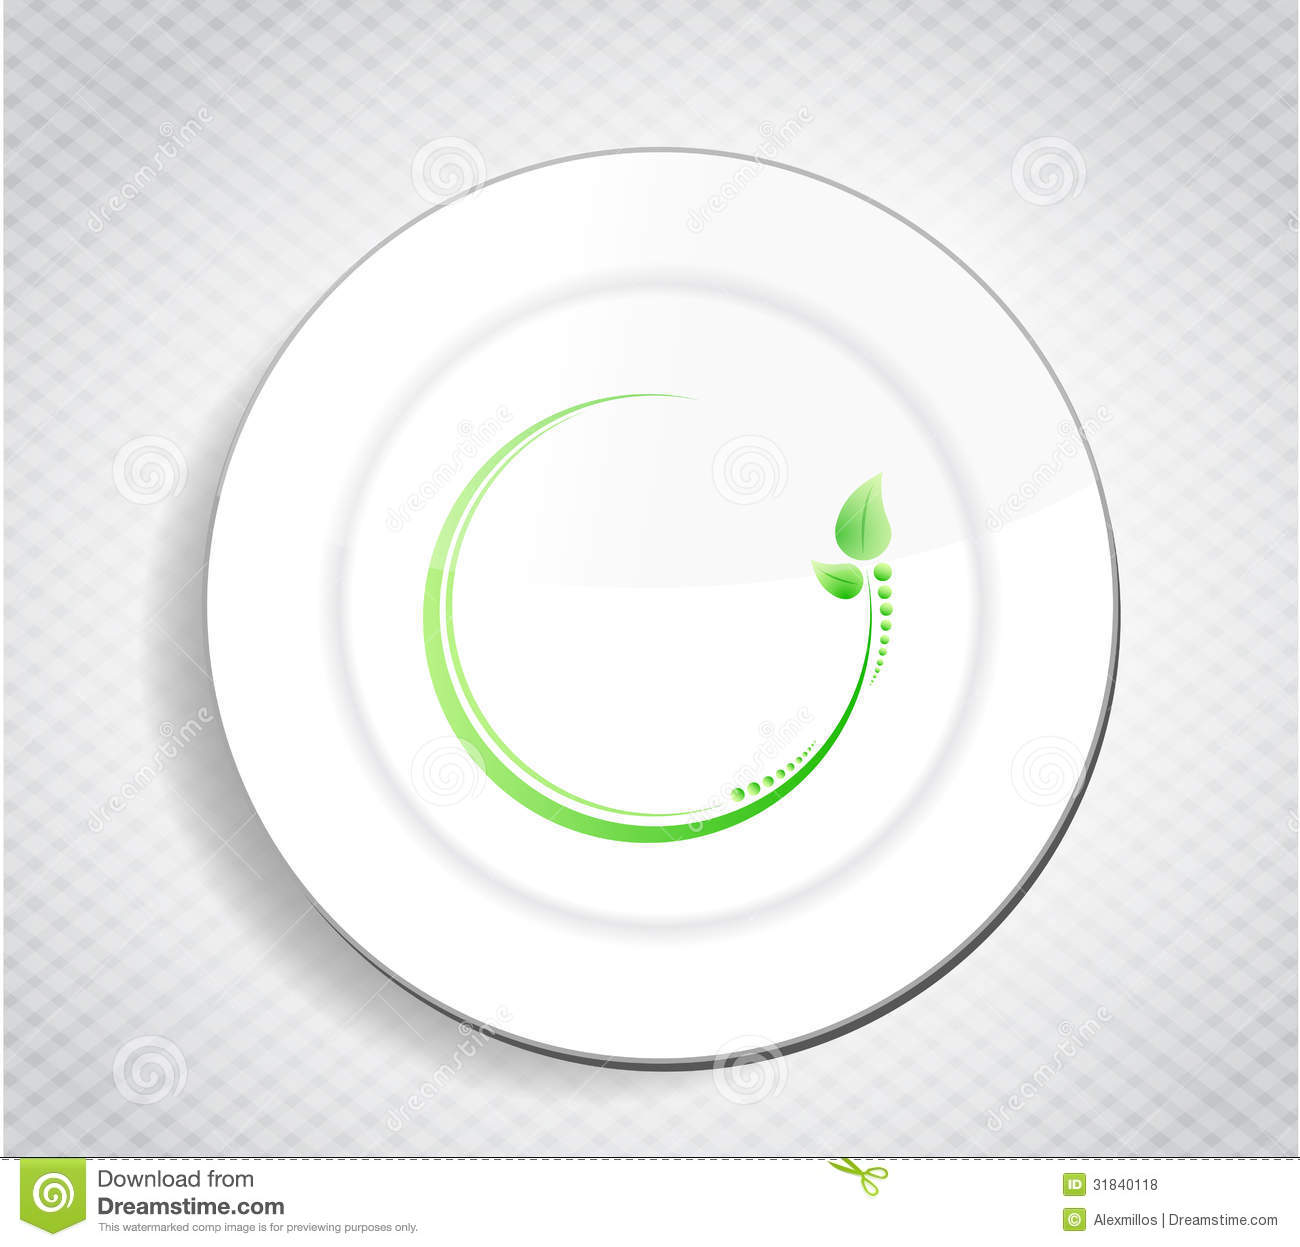 Healthy food leave design over a dish royalty free stock photos royalty free stock photo pronofoot35fo Choice Image